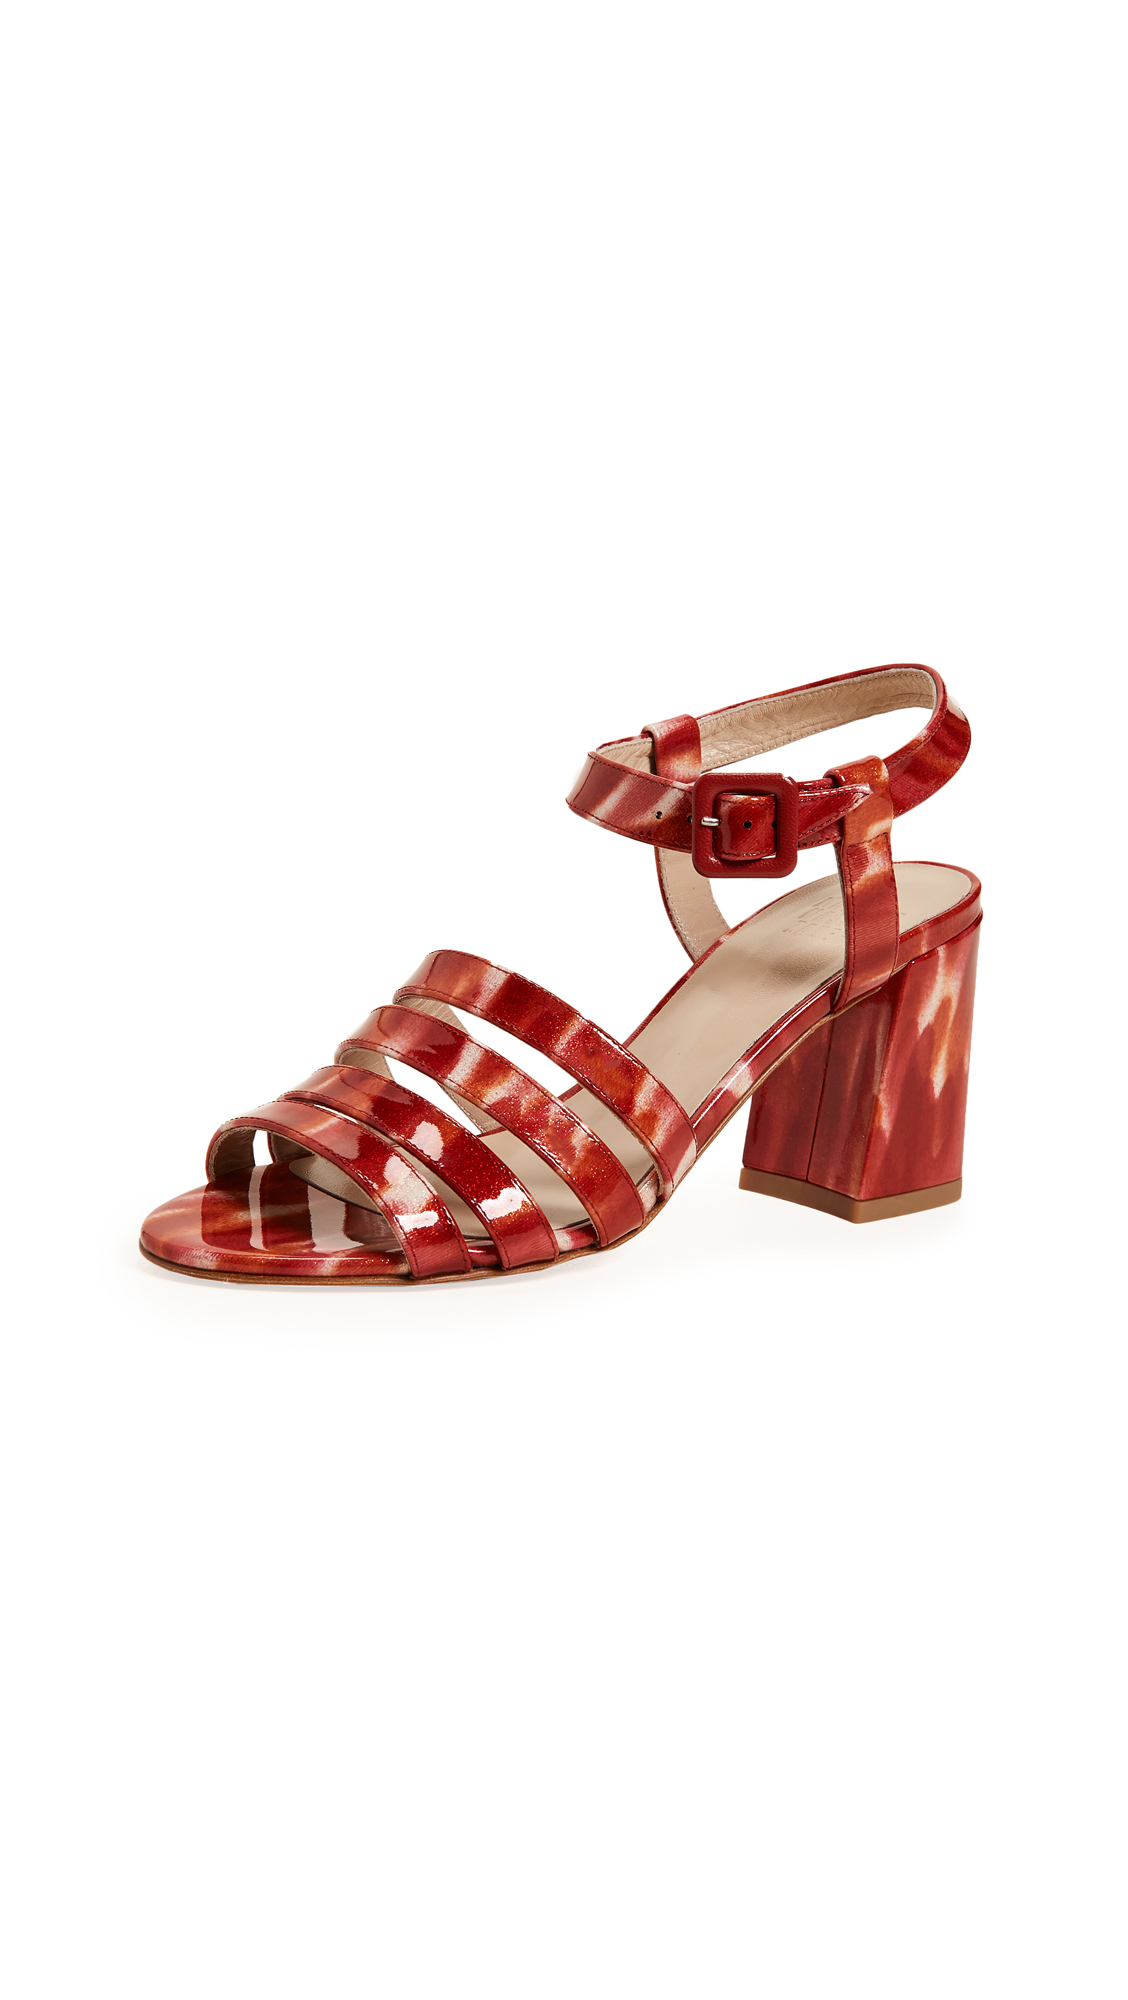 Maryam Nassir Zadeh Palma High Sandals - Ruby Sparkle Tortoise